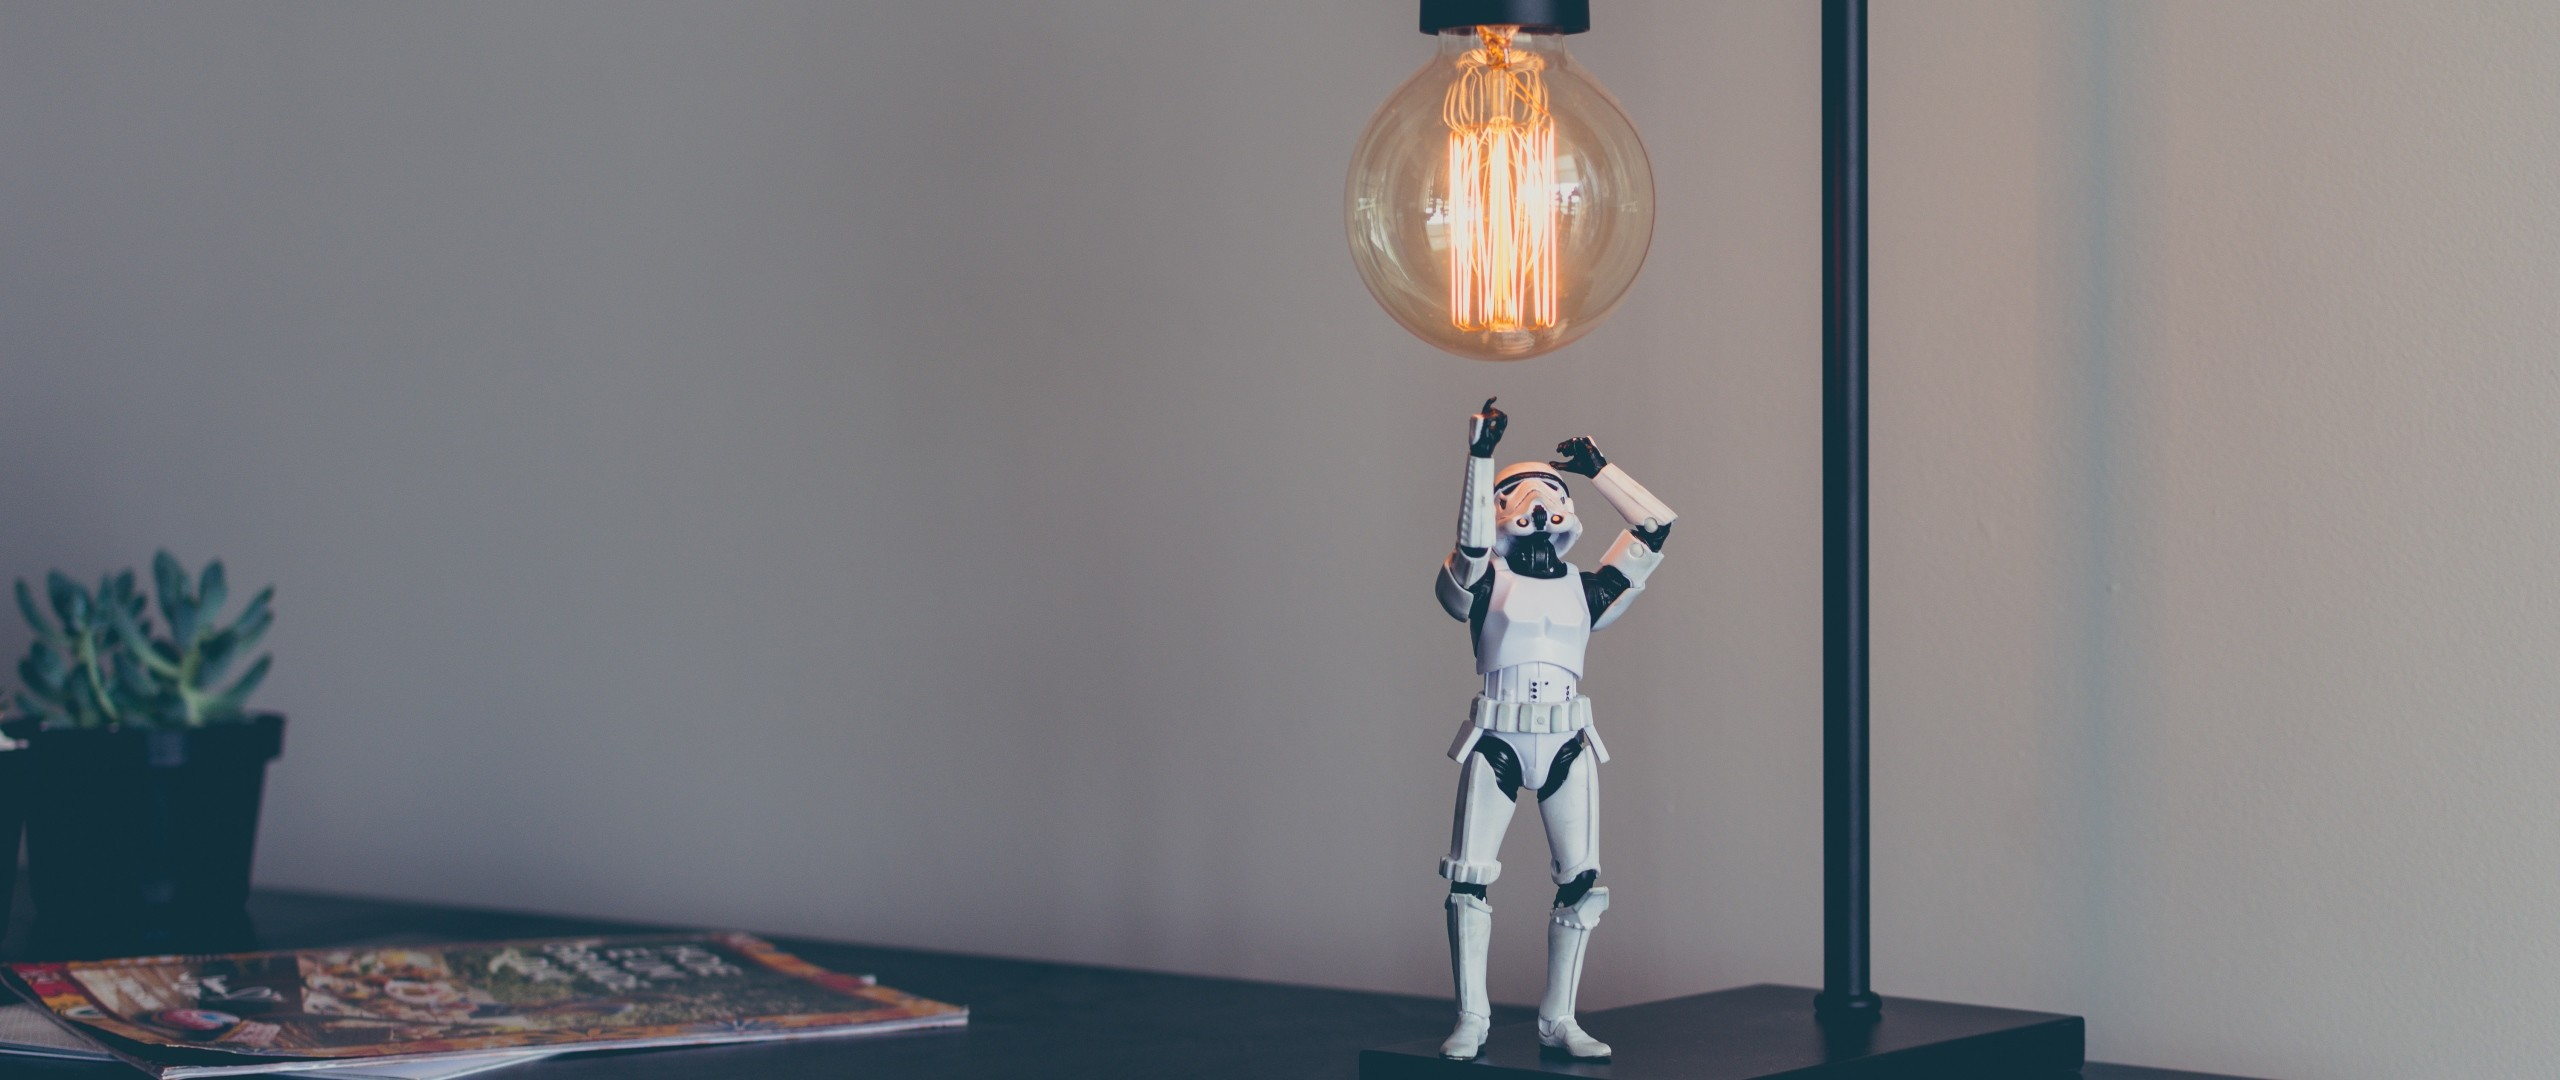 Preview wallpaper stormtrooper, star wars, lamp, toy 2560×1080